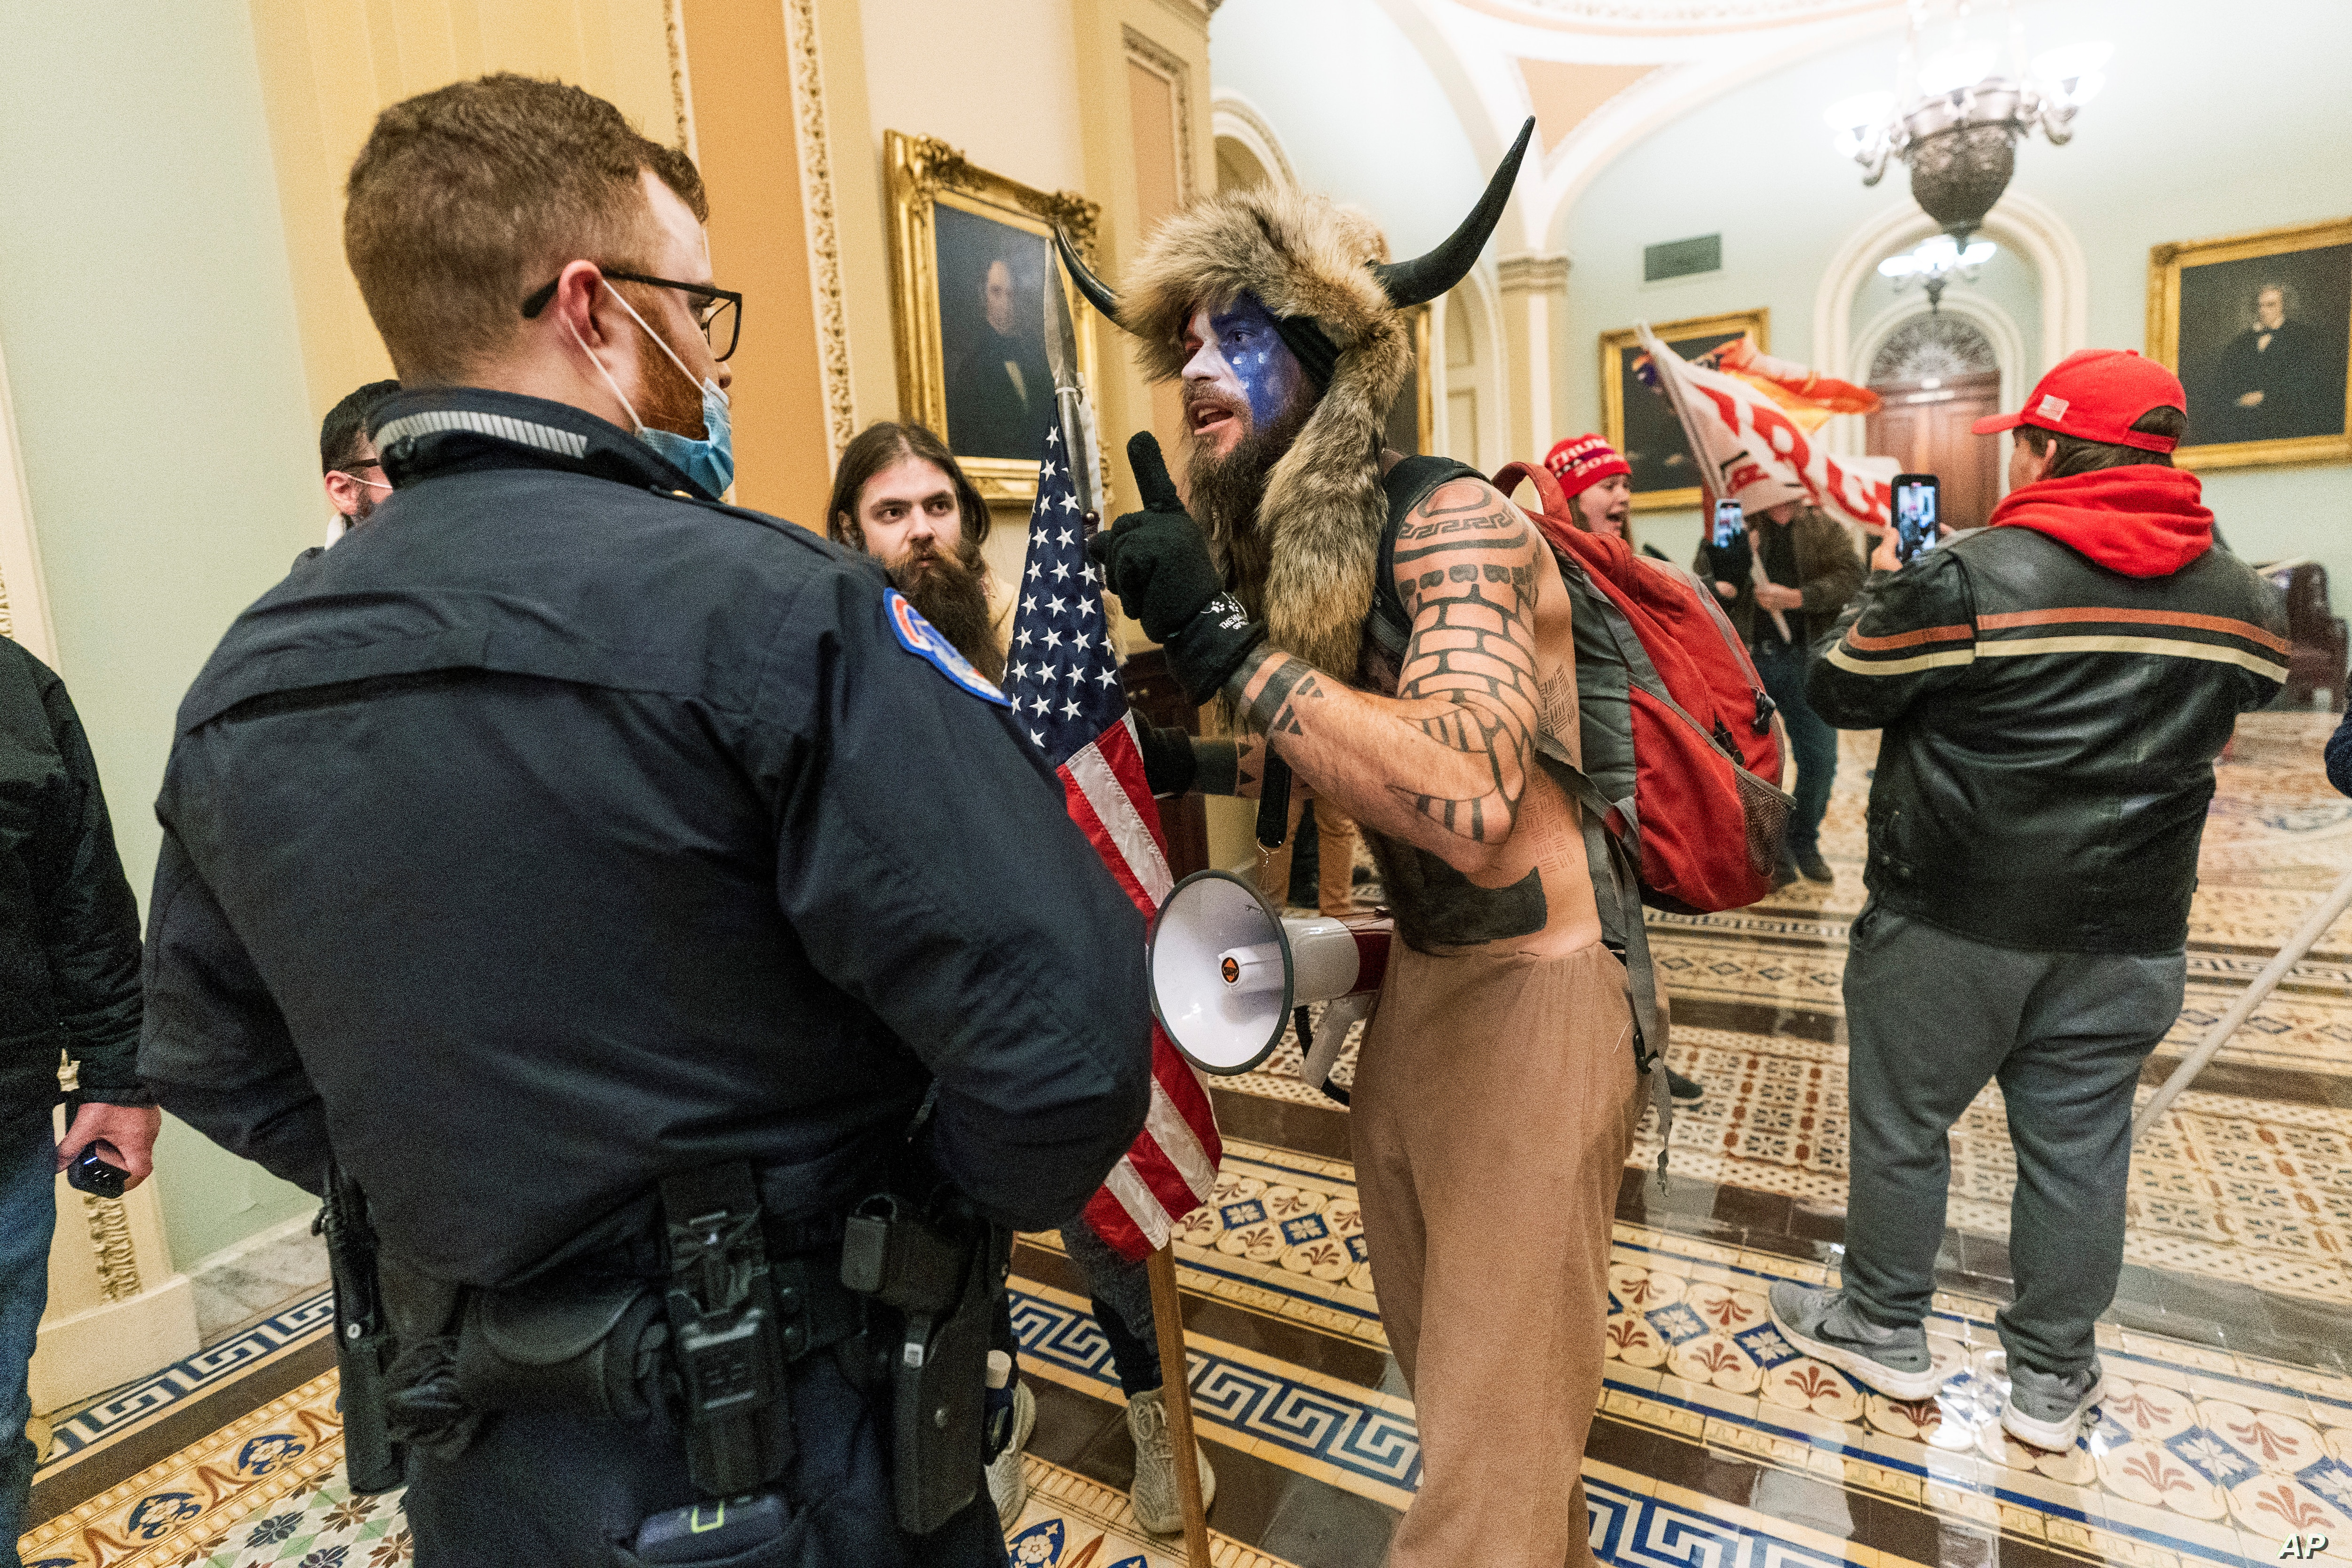 Donald Trump are confronted by U.S. Capitol Police officers